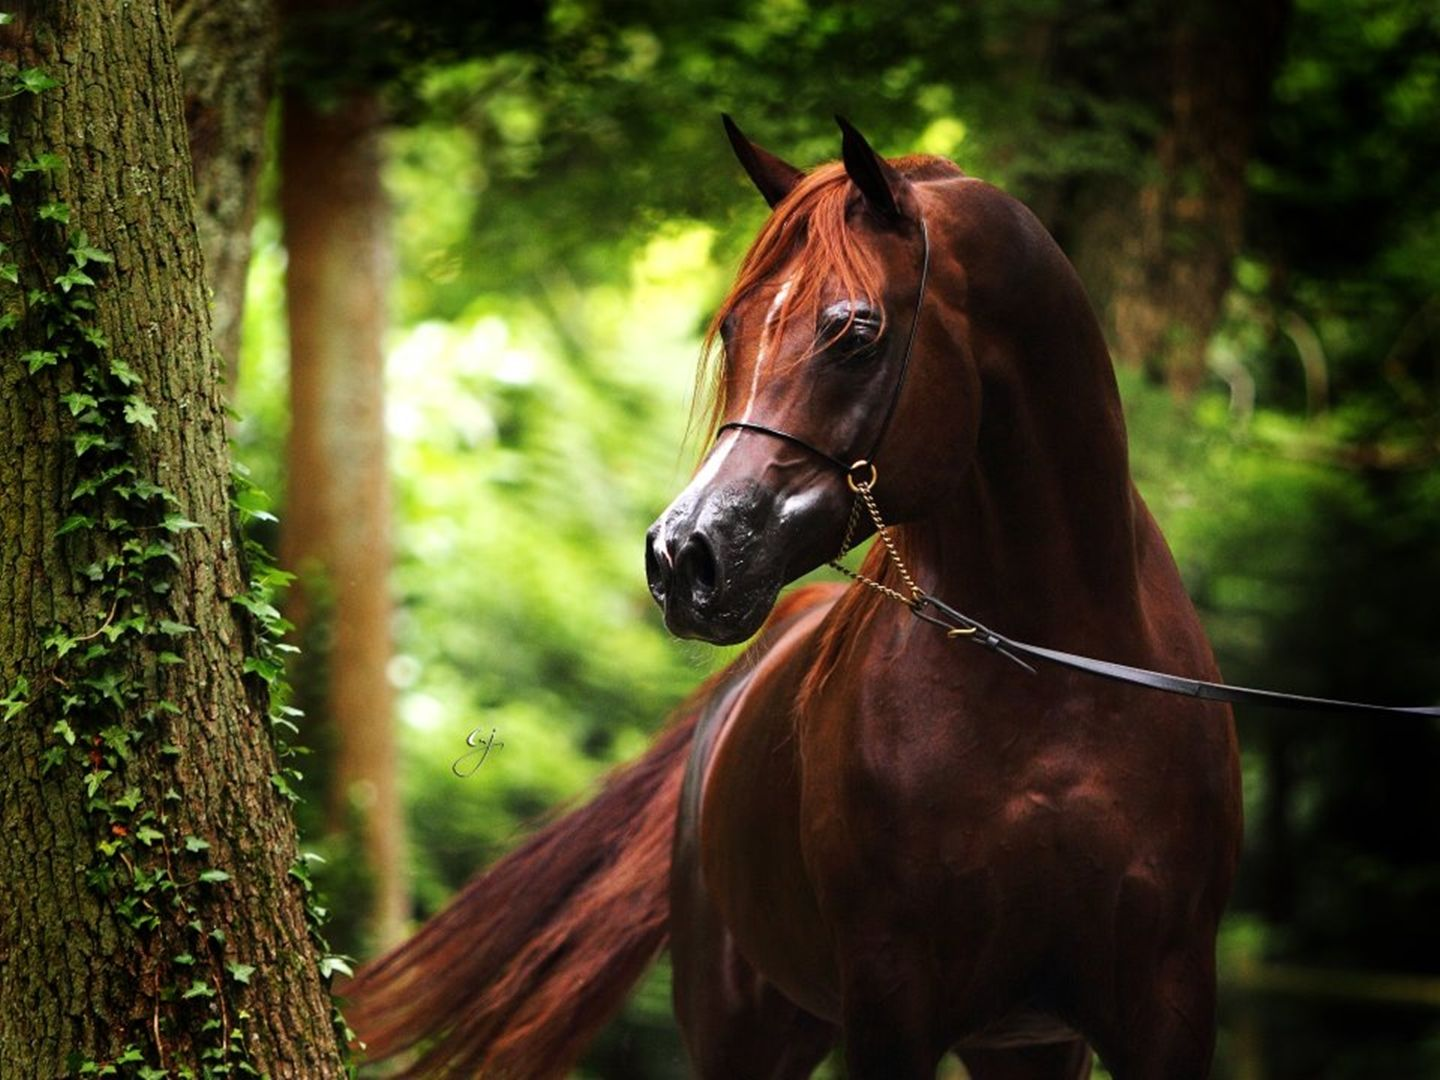 Cool Wallpaper Horse Spring - 42ced647c3c428fc5e53be9201bf3332  You Should Have_854848.jpg